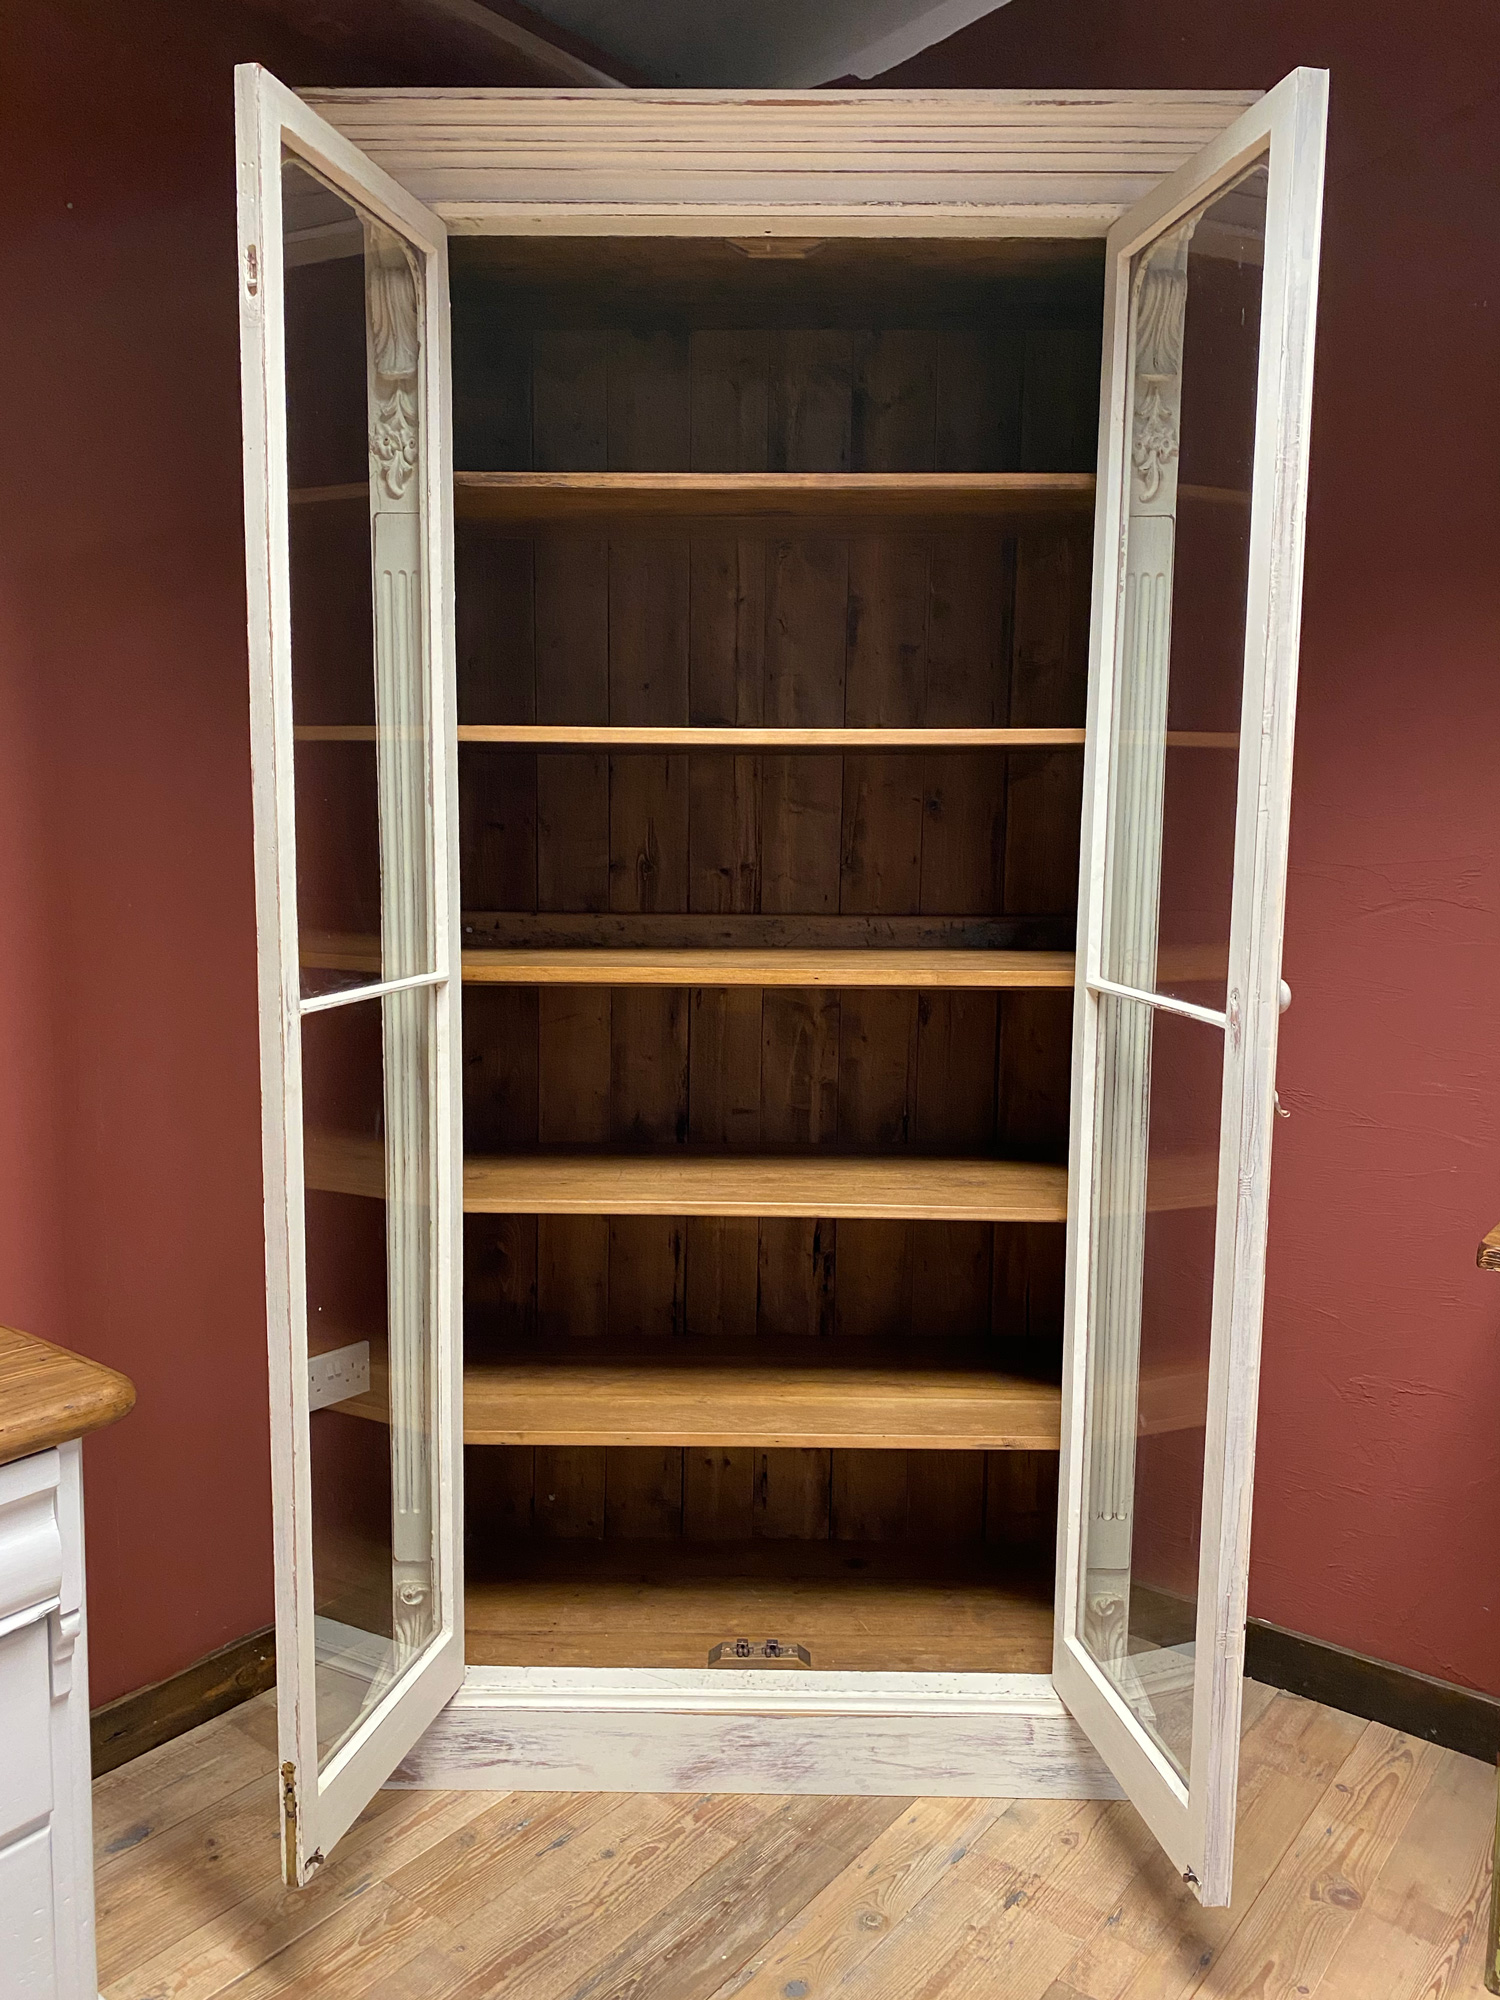 Original glazed bookcase with doors open